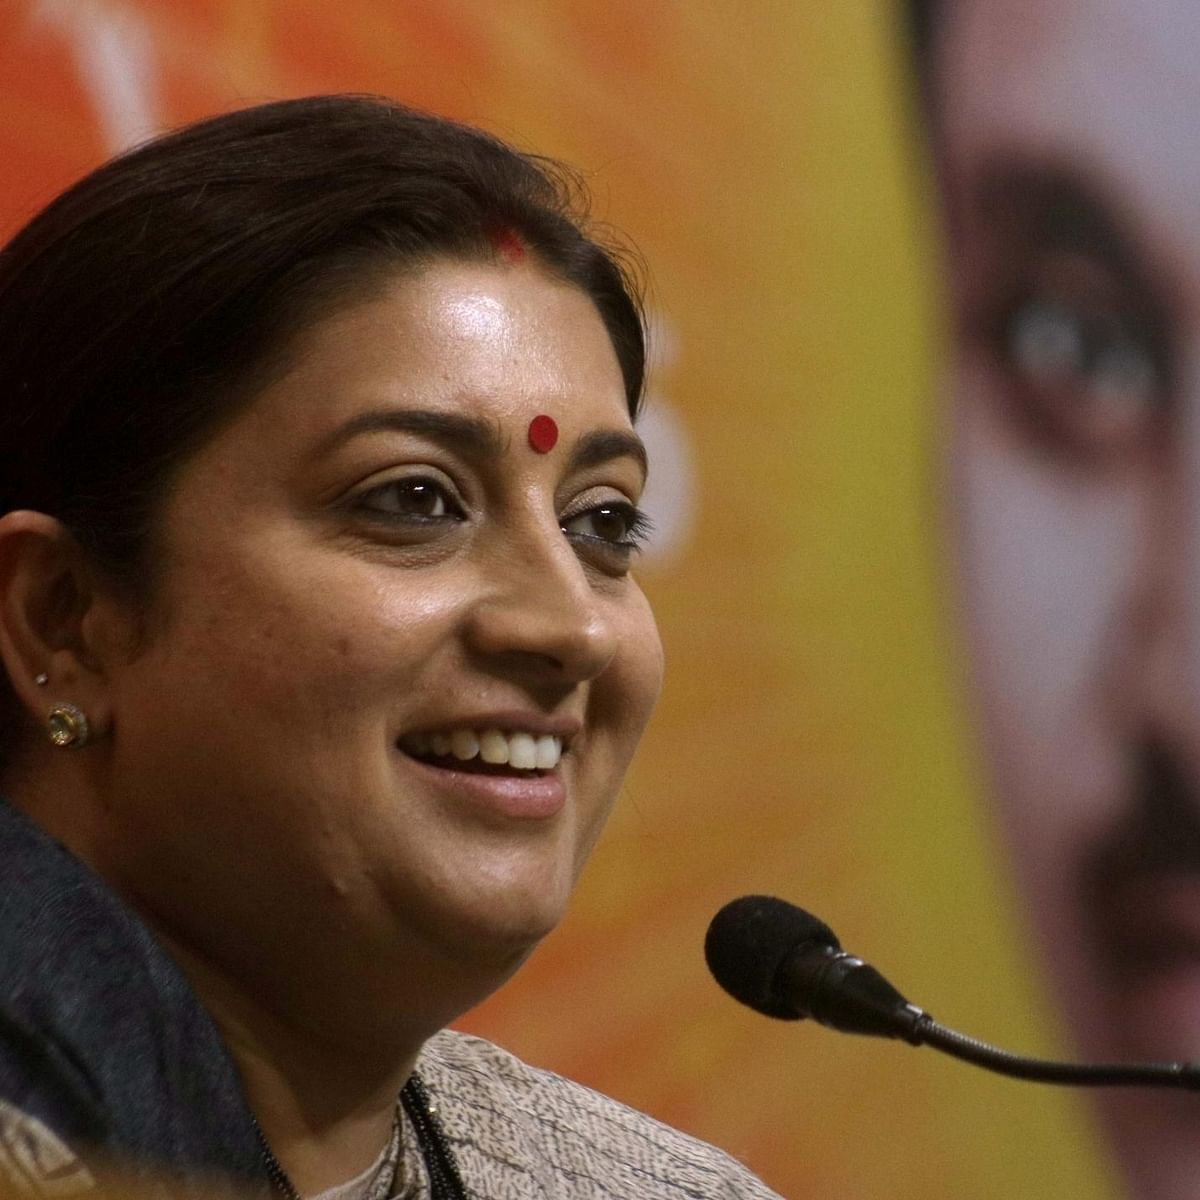 Anti-trafficking units, women's help desks soon: Smriti Irani